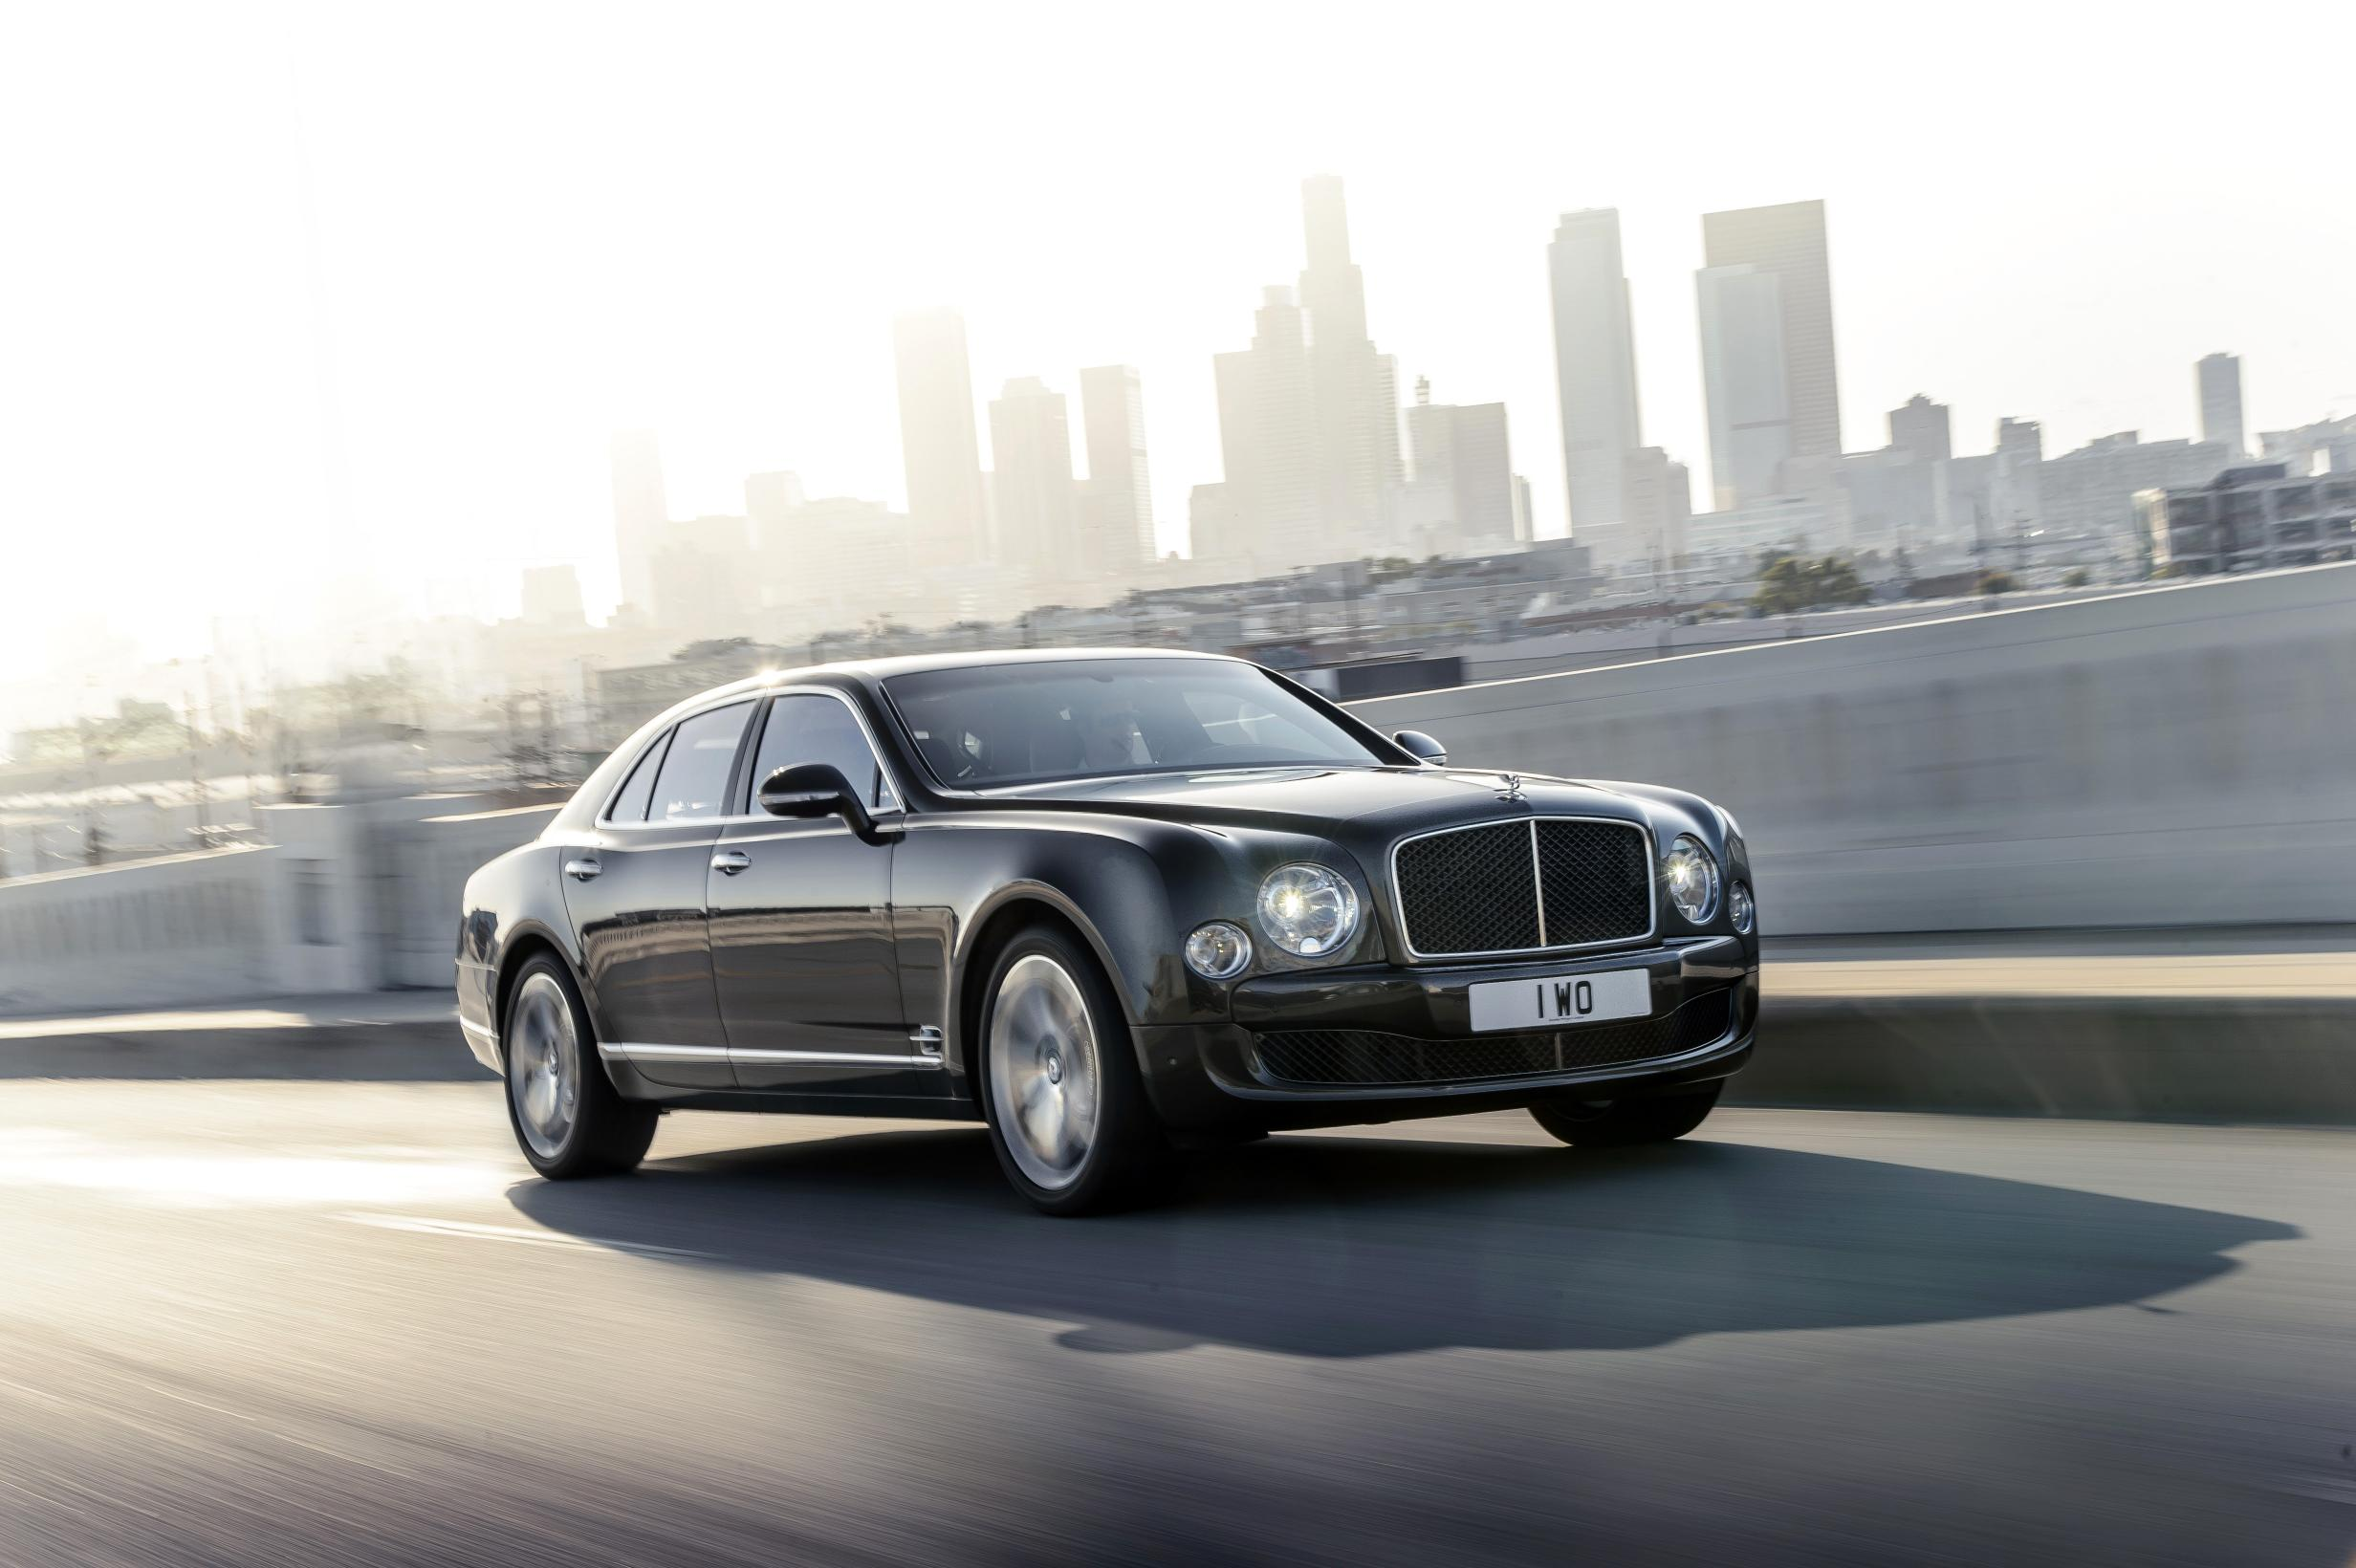 2015 Bentley Mulsanne Speed Is The New Flagship - autoevolution